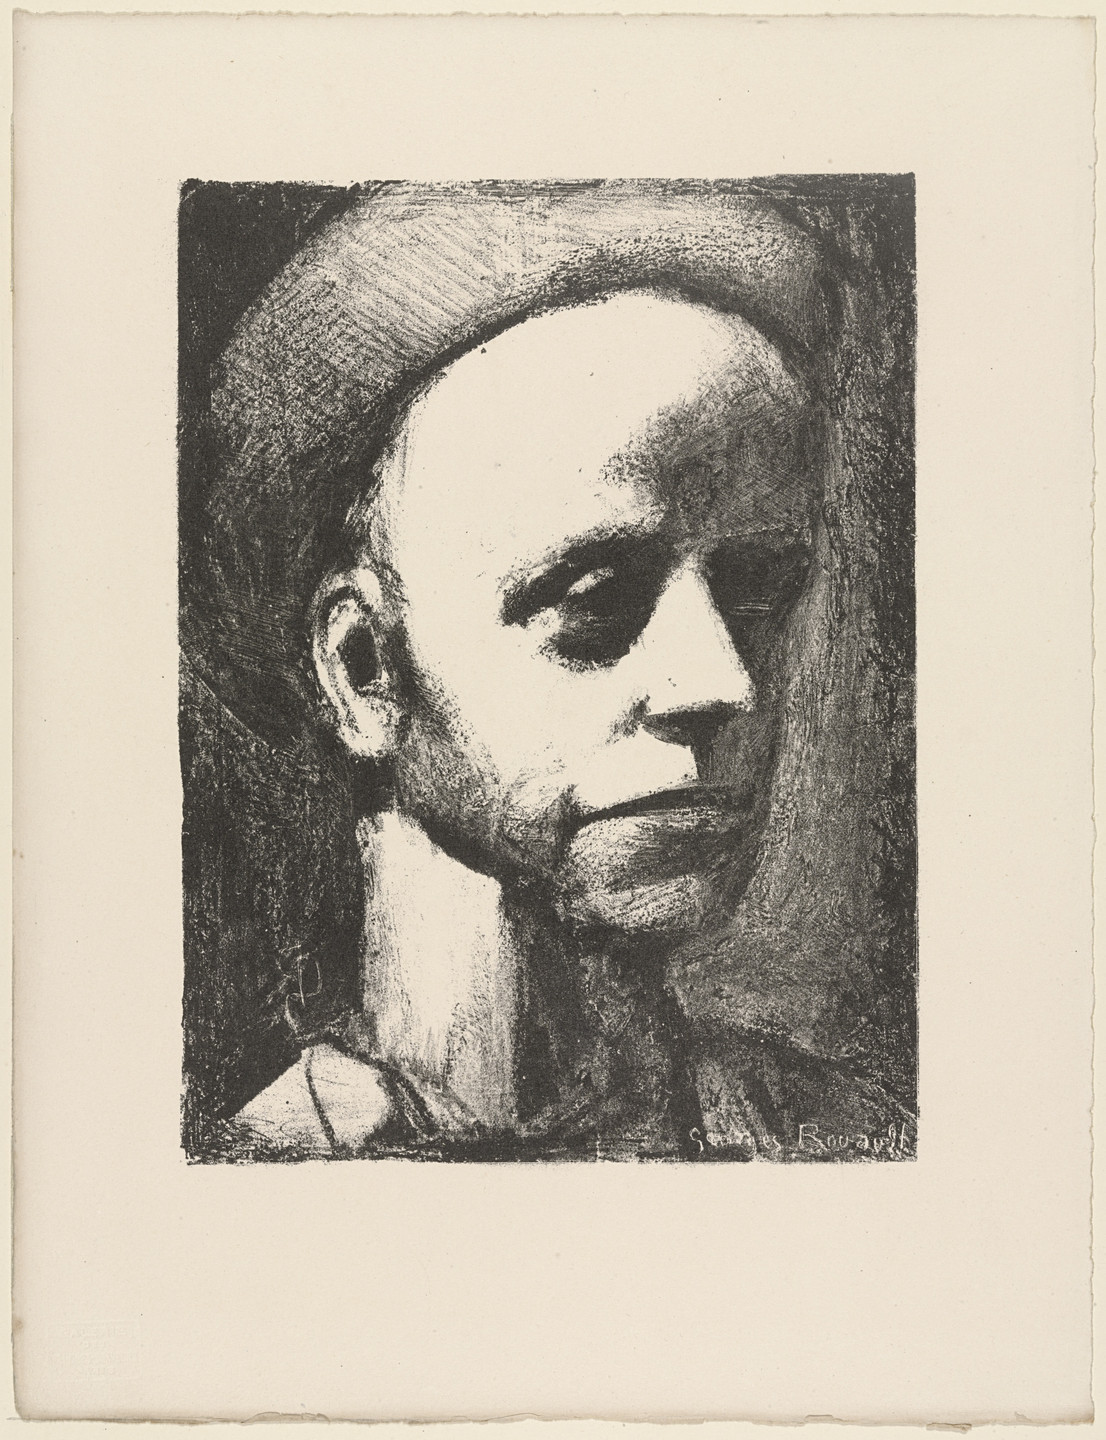 Georges Rouault. Self-Portrait with Cap. 1926